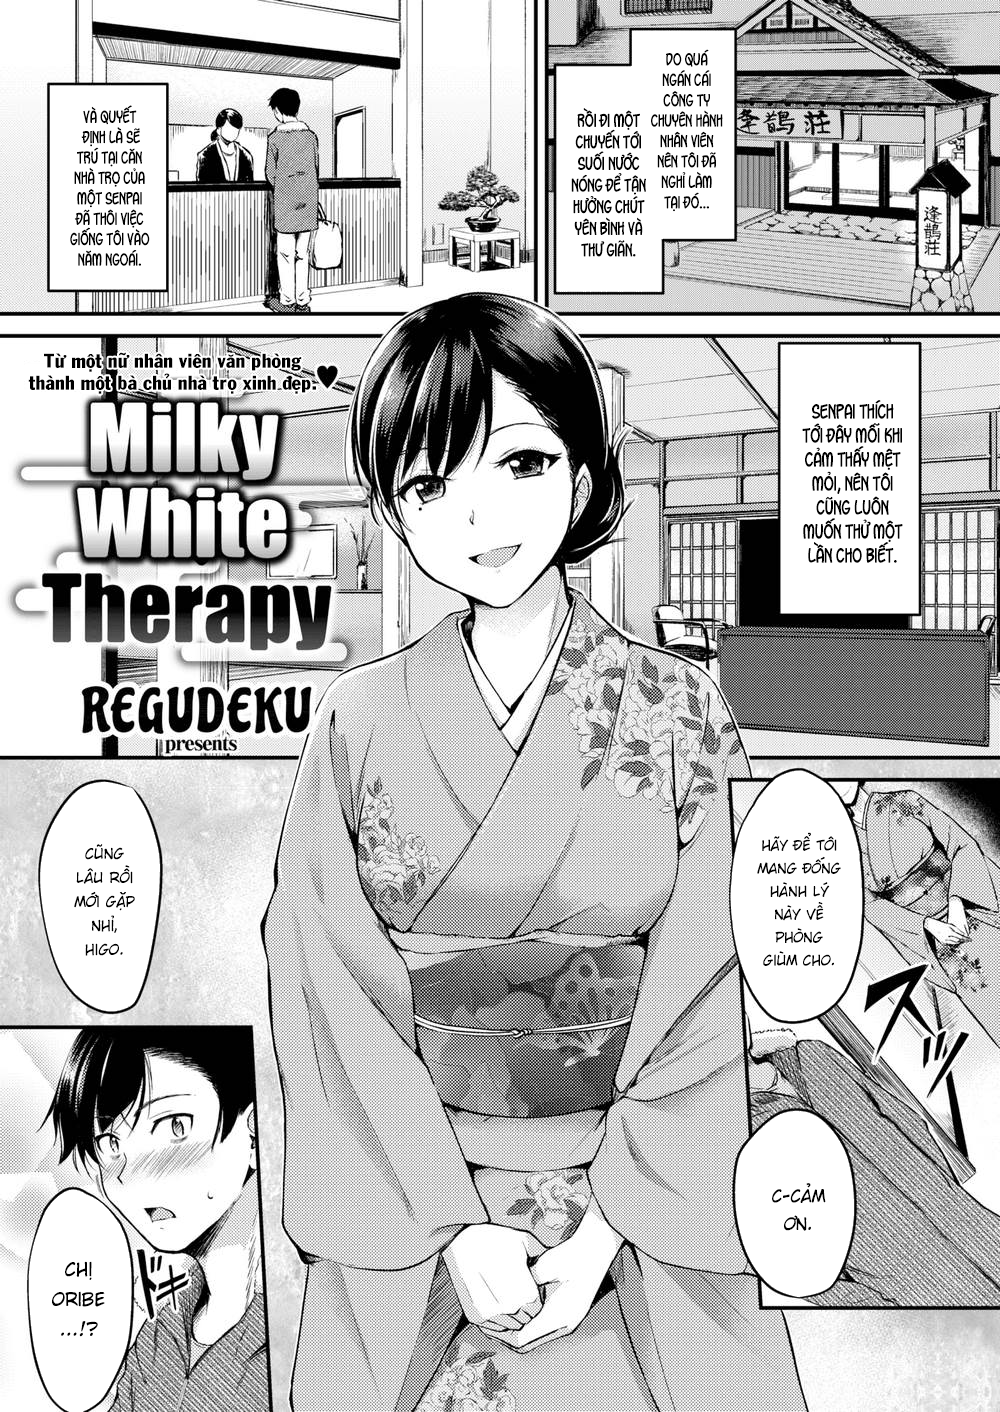 HentaiVN.net - Ảnh 1 - Milky White Therapy - Oneshot